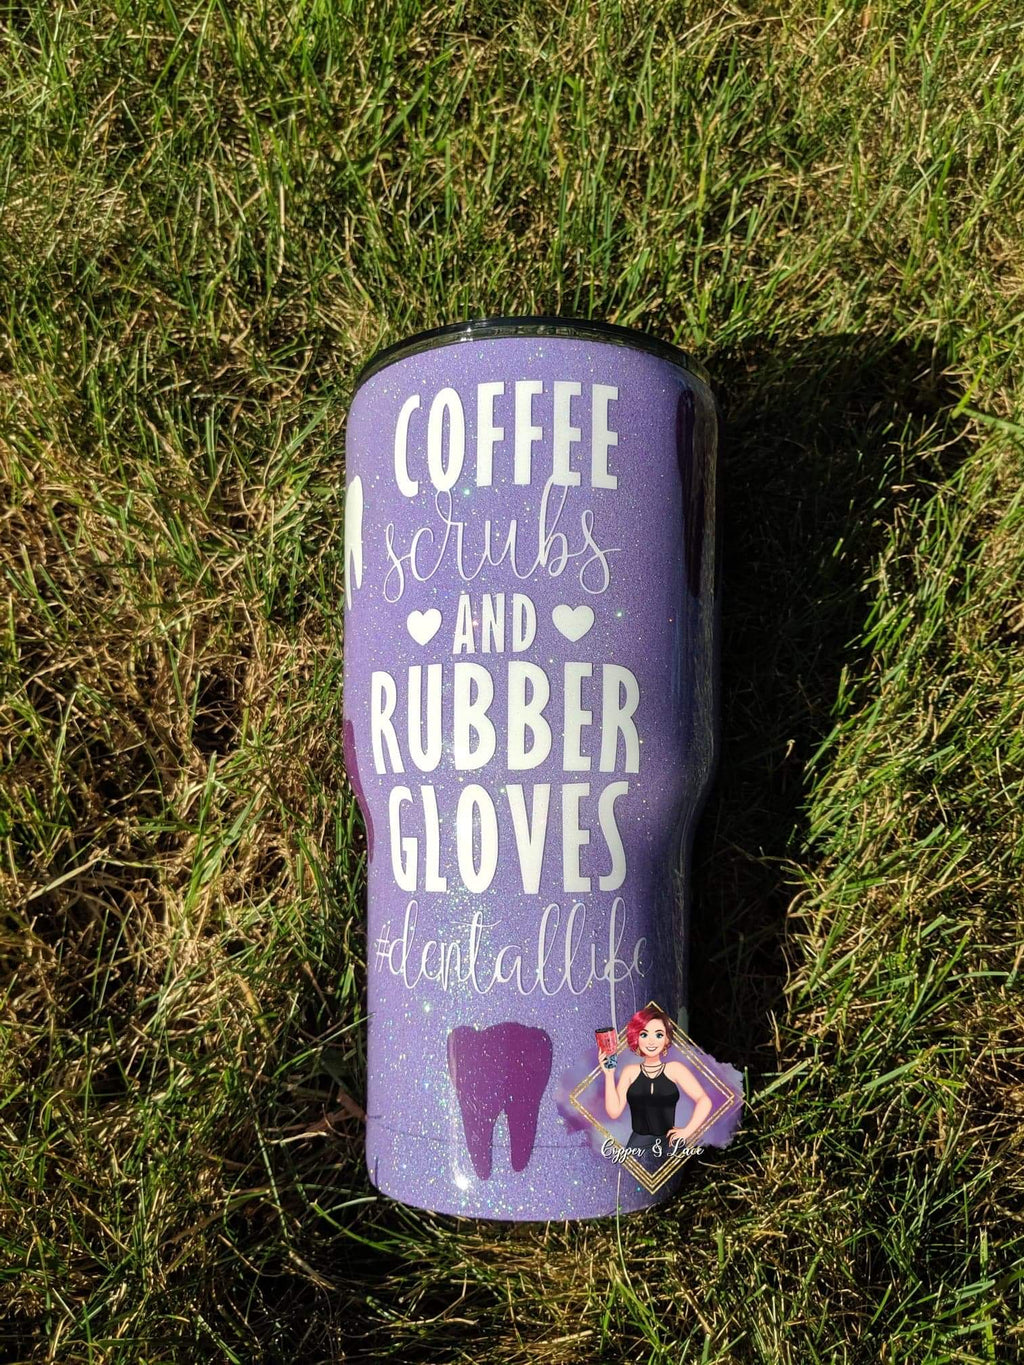 Coffee, Scrubs, and Rubber Gloves